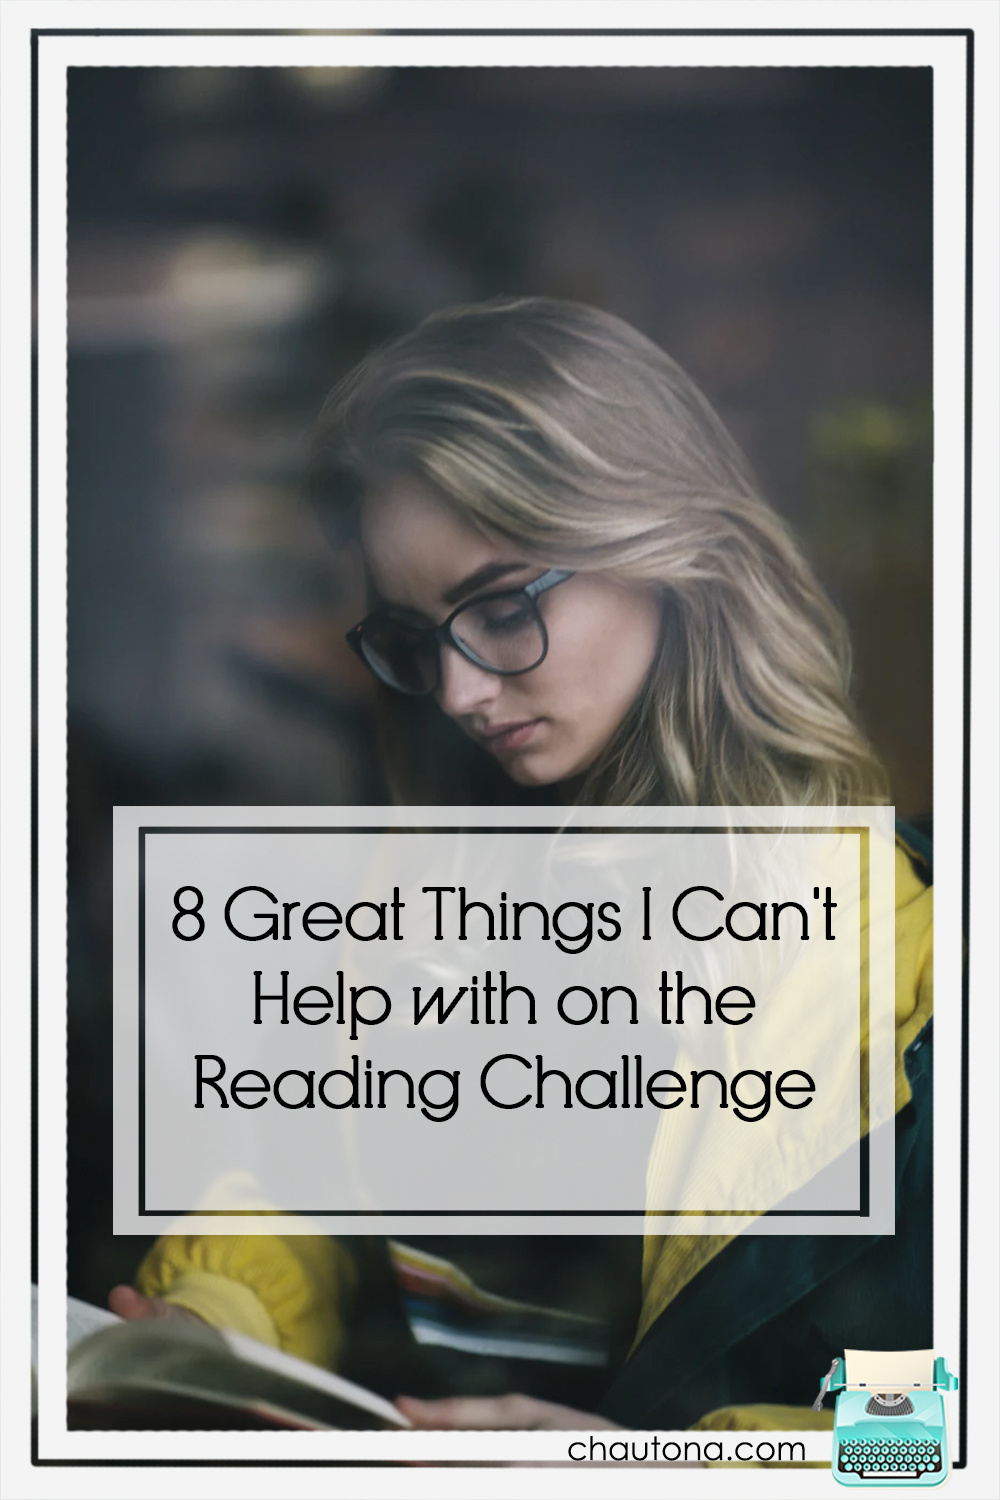 From debut authors to authors who share your name, some of these things I might not be able to help with. Ahem. However, up to fifty-two, I can! That's cool! via @chautonahavig